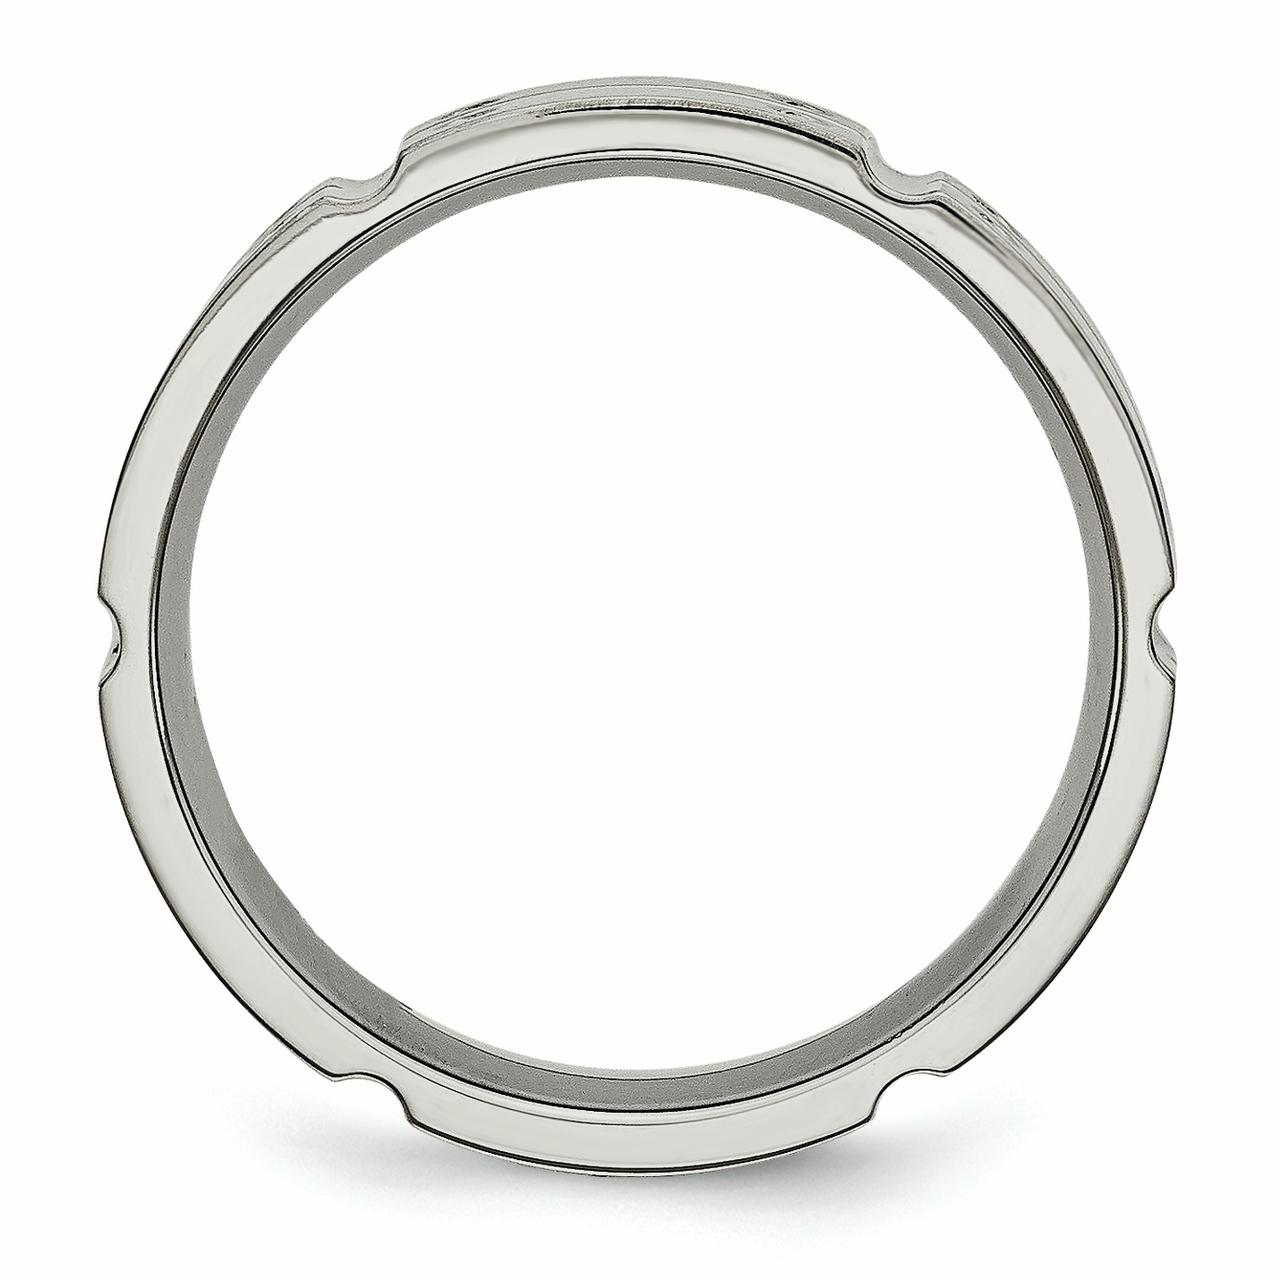 Titanium 6mm Brushed Wedding Ring Band Size 12.50 Fancy Fashion Jewelry Gifts For Women For Her - image 1 de 10